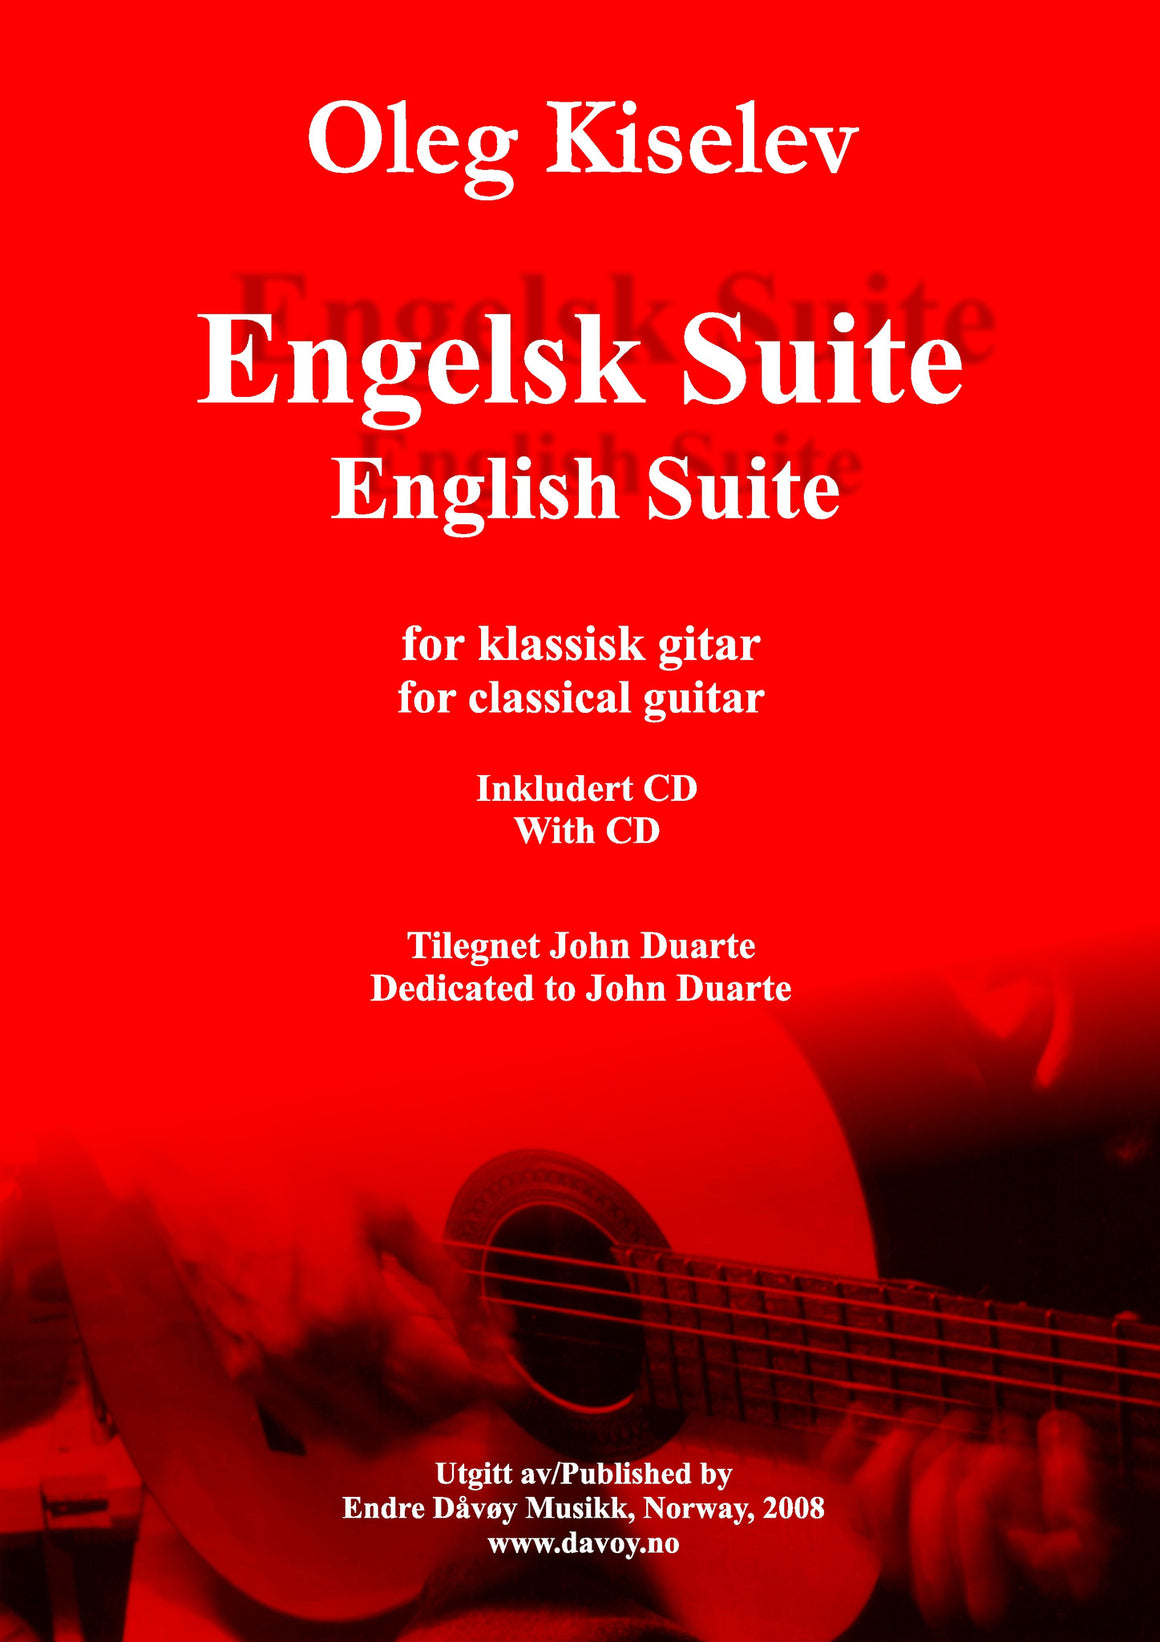 Oleg Kiselev: Engelsk Suite (English Suite)